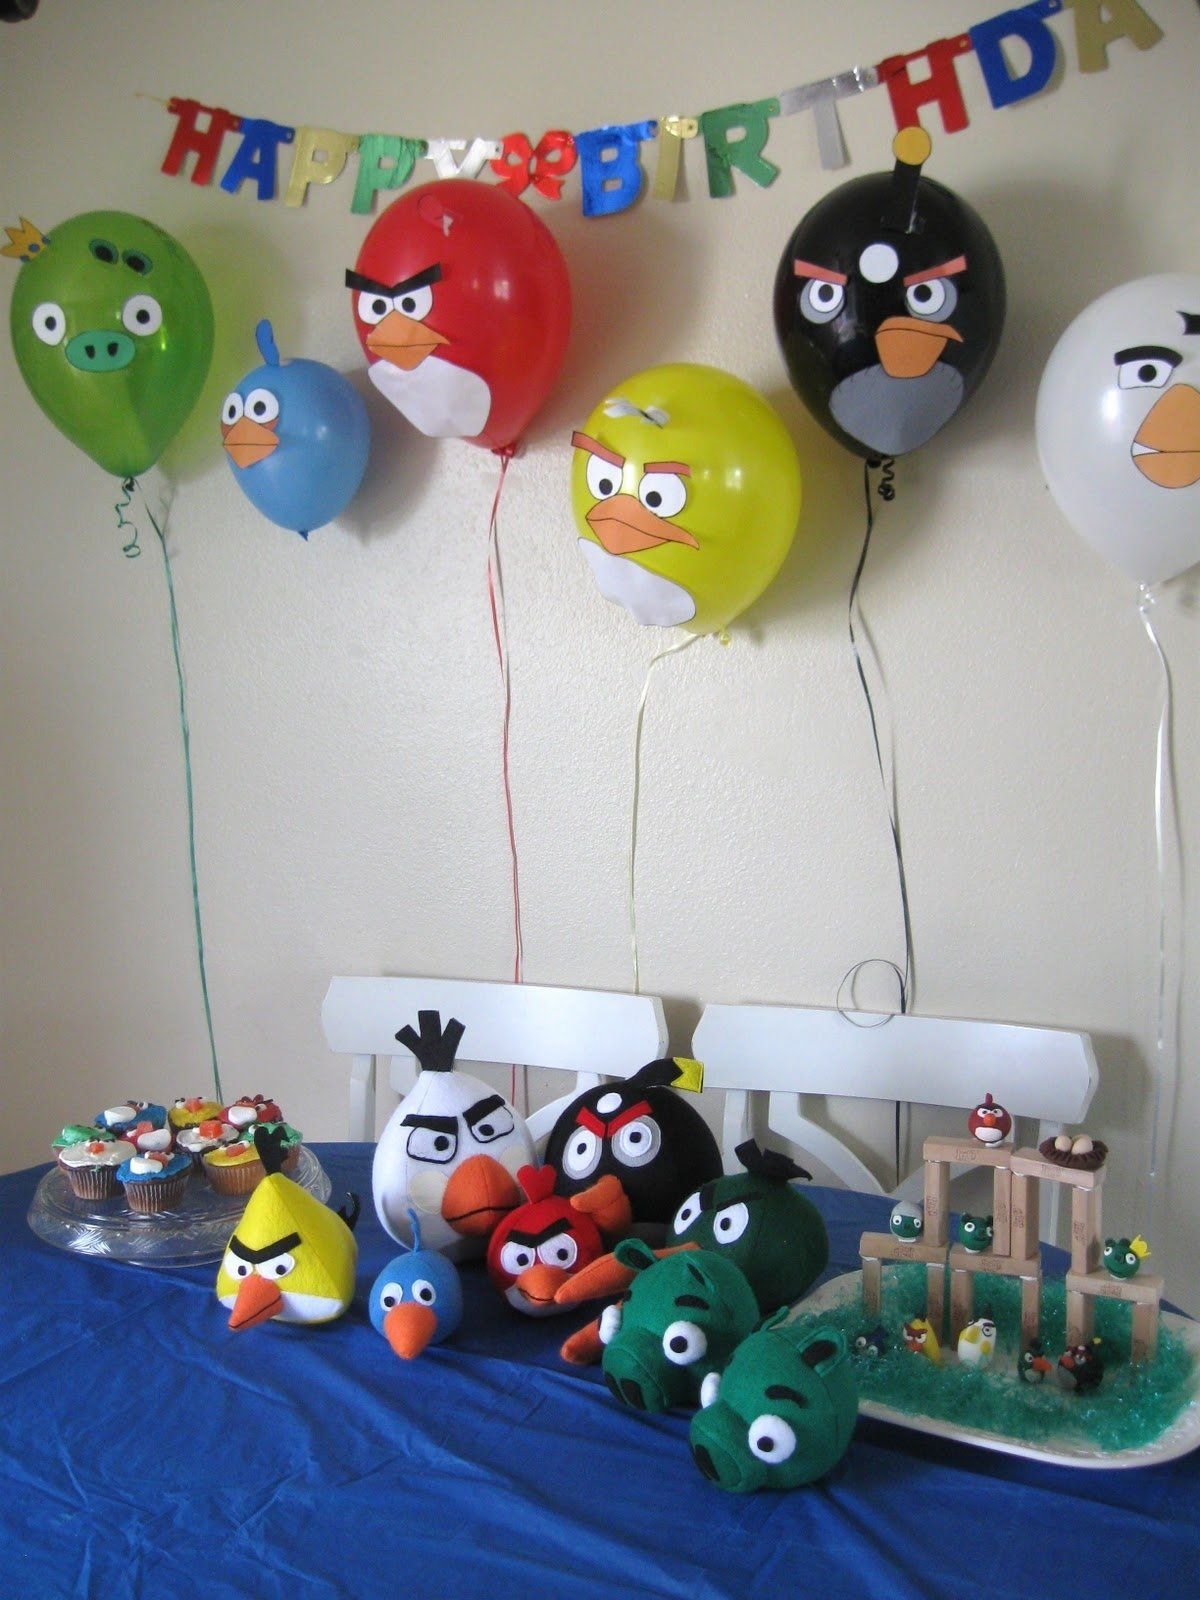 10 Pretty Party Ideas For 2 Year Old Boy Angry Birds Balloons Jacks Next Birthday